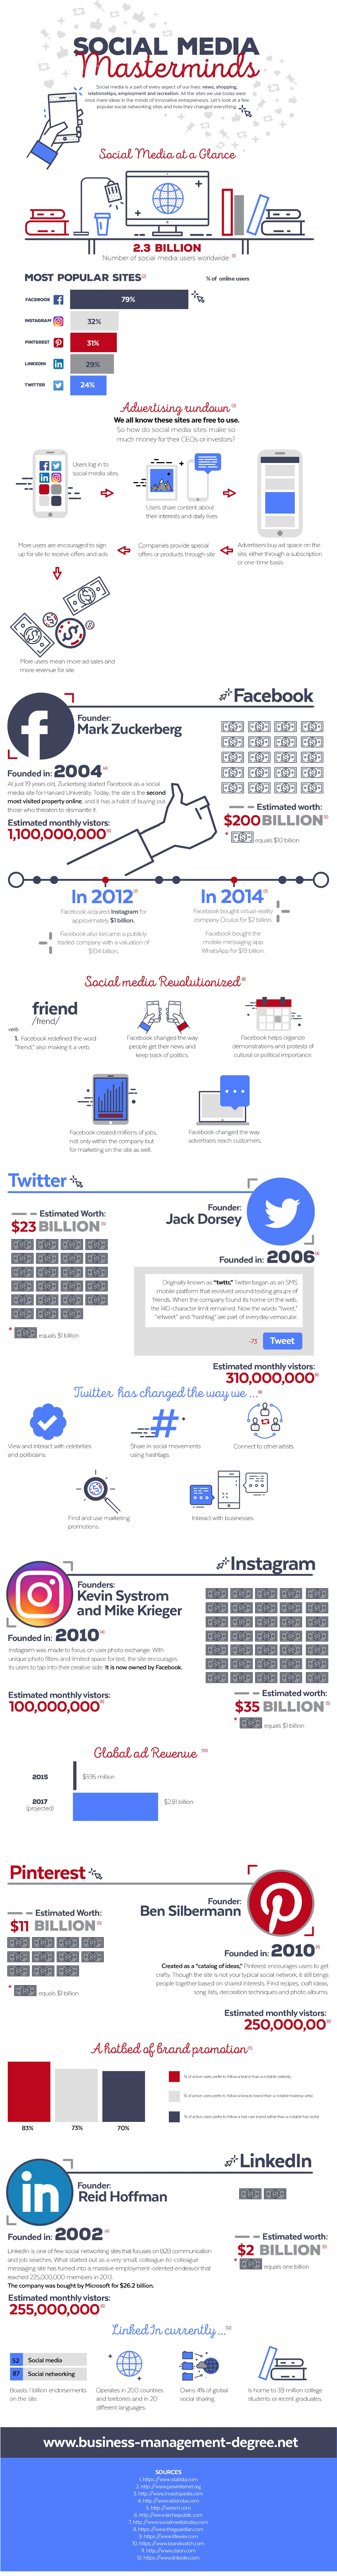 Social Media Masterminds - #infographic